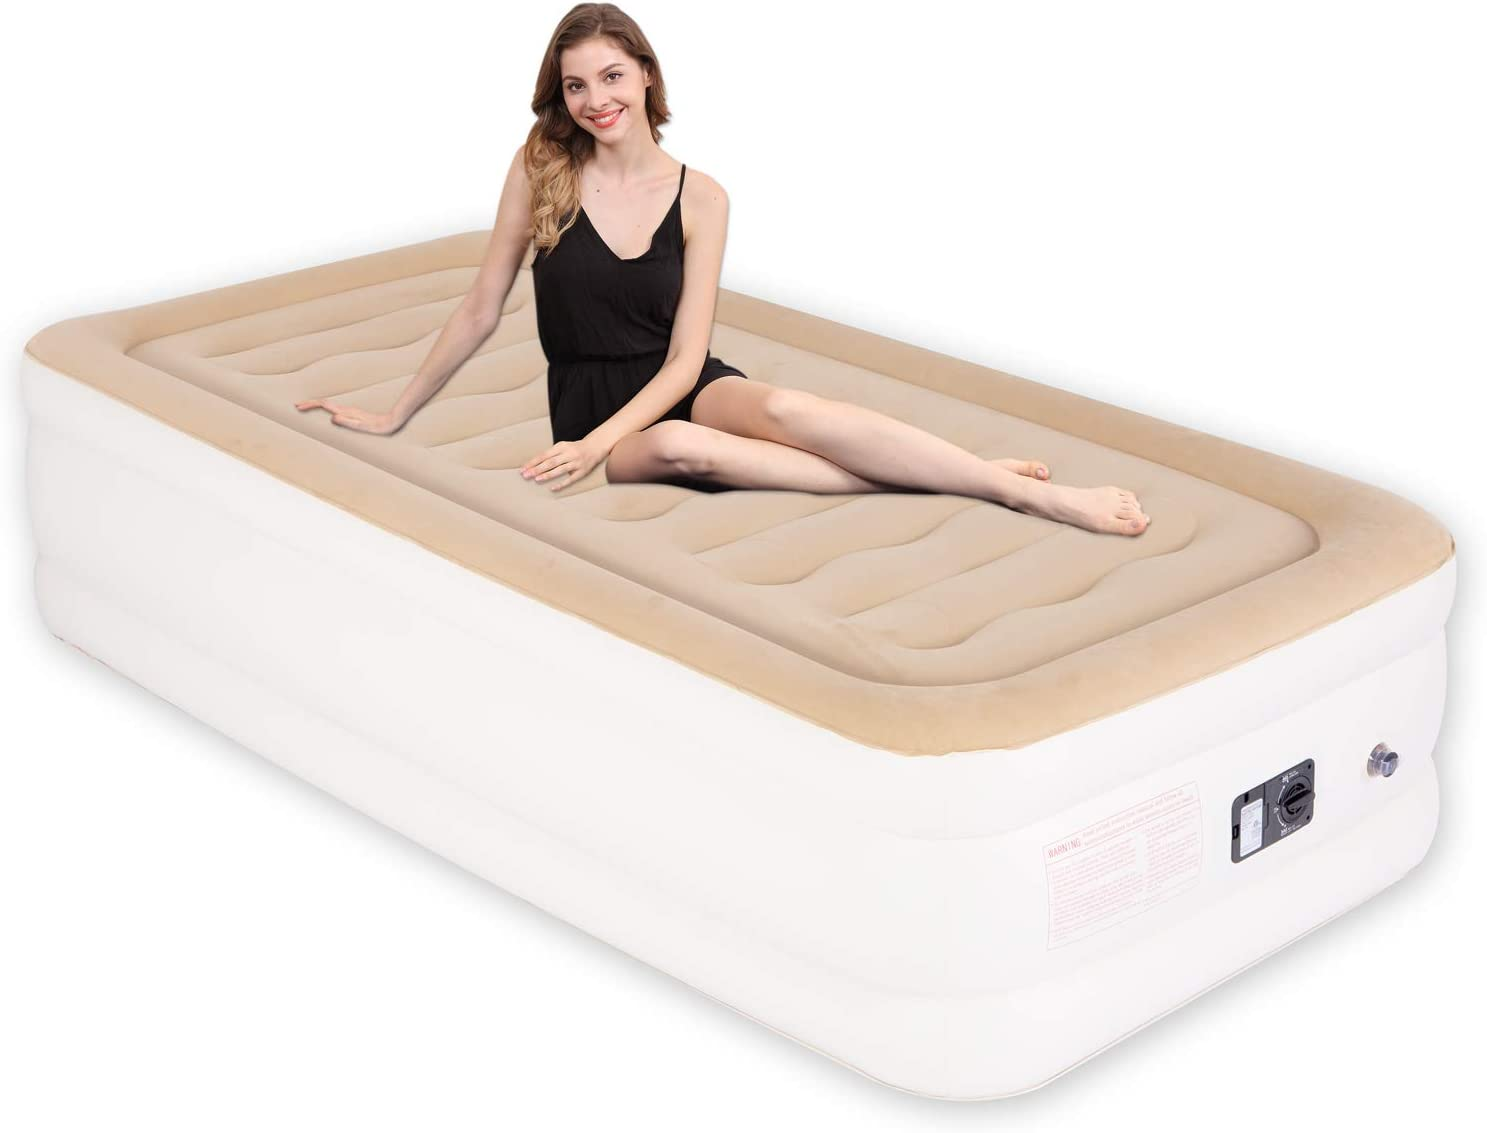 XL Inflatable Mattress for Guests /& Camping Blow Up Mattress Twin with Storage Bag 78 x 40 x 18 inches JOOFO Twin Air Mattress with Built in Pump